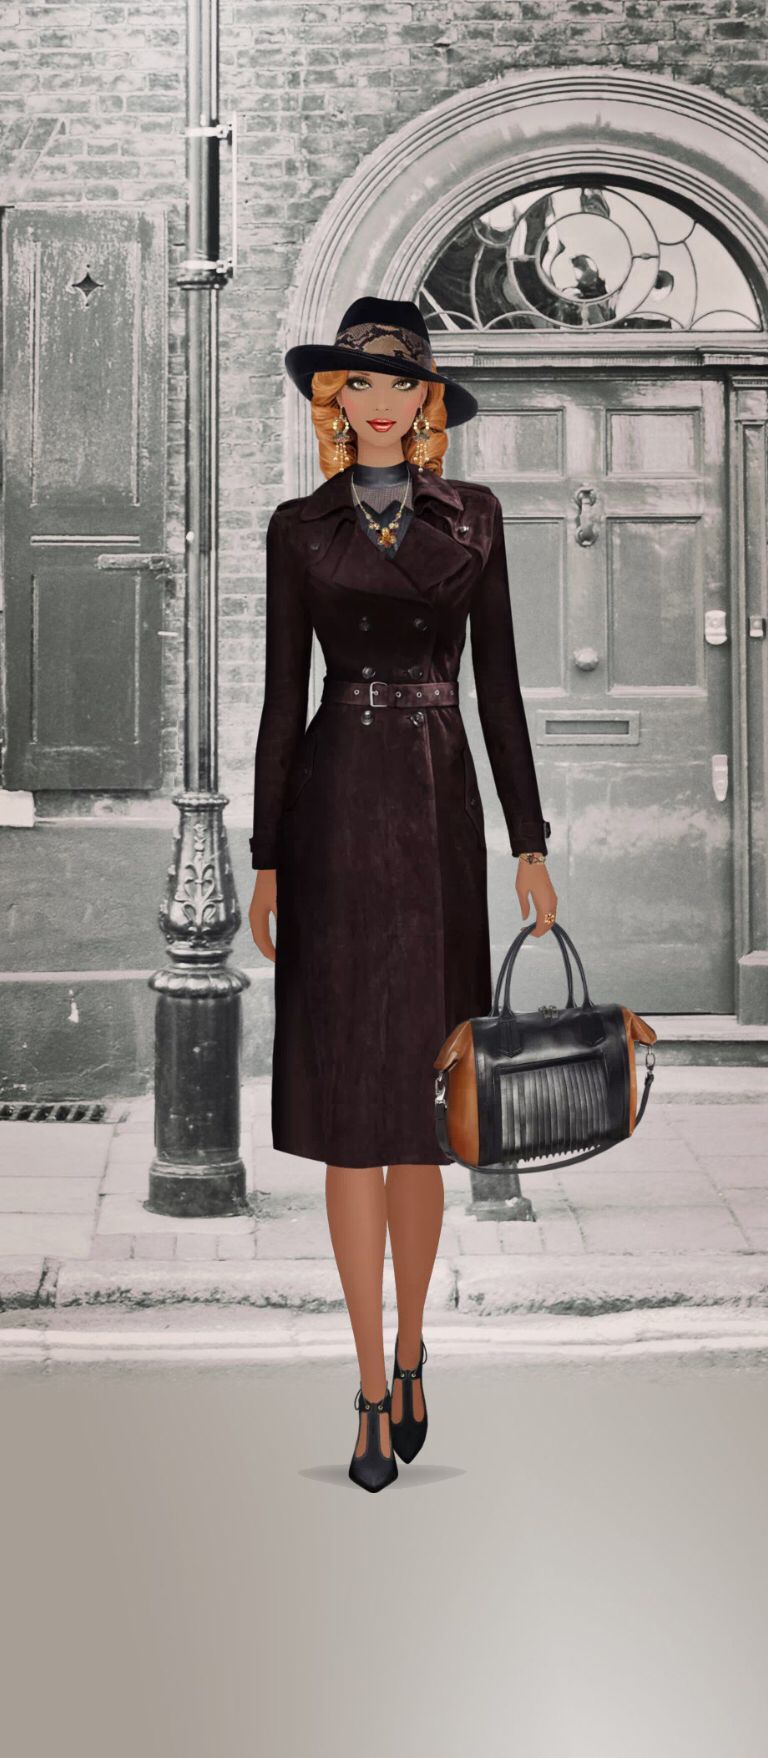 Baker Street Detective Covet Fashions Pinterest Baker Street Covet Fashion And Street